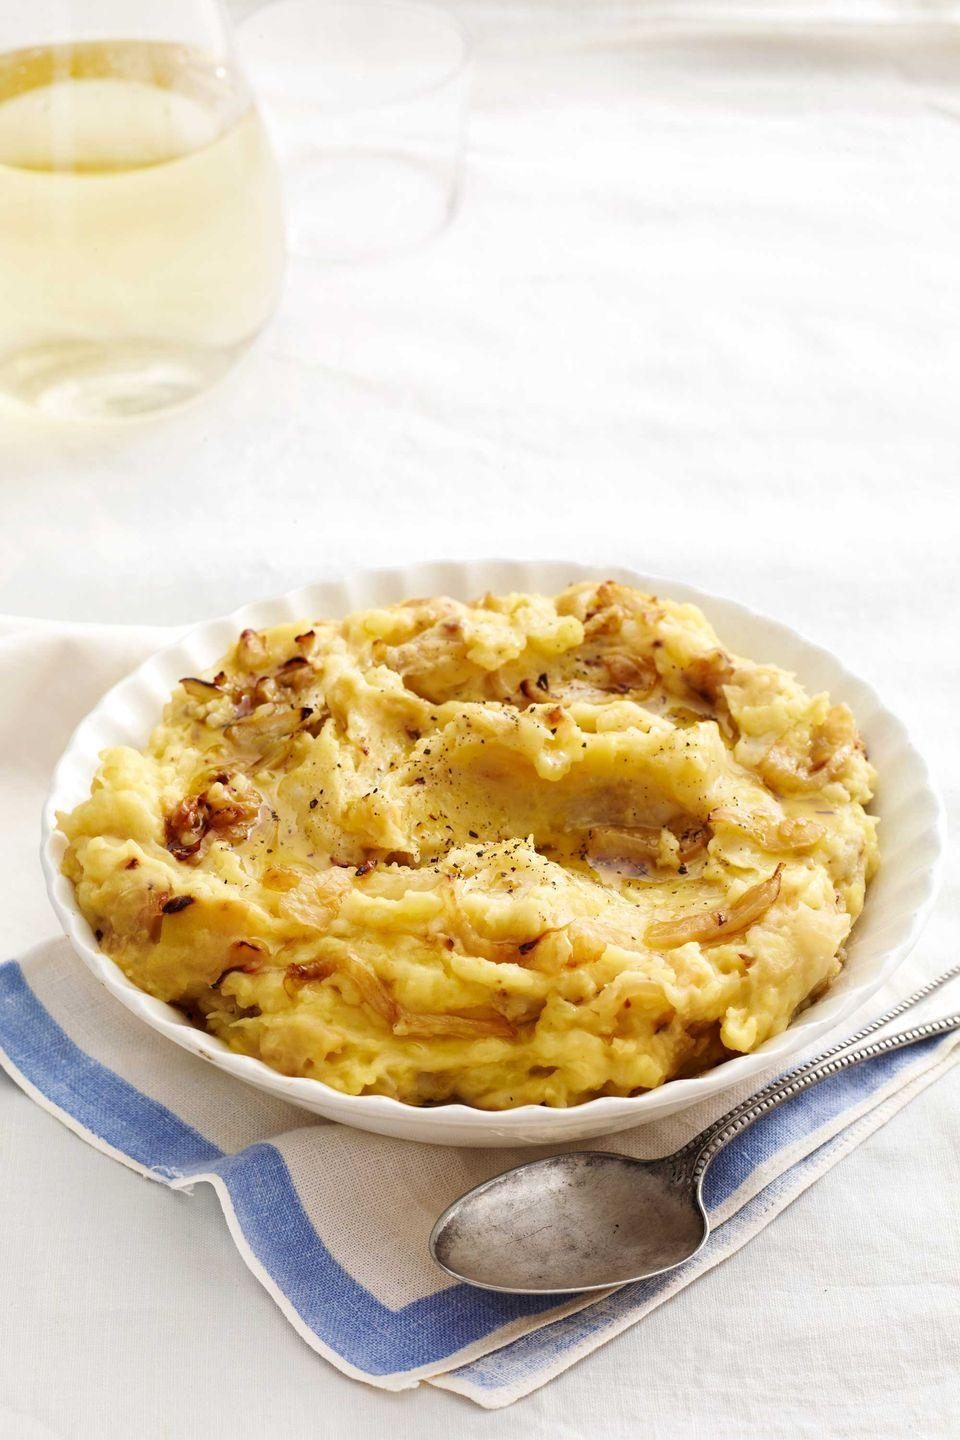 "<p>Caramelized fennel adds a flavor and color to these creamy mashed potatoes.</p><p><strong><a href=""https://www.countryliving.com/food-drinks/recipes/a4954/mashed-potatoes-caramelized-fennel-recipe-clx0414/"" rel=""nofollow noopener"" target=""_blank"" data-ylk=""slk:Get the recipe"" class=""link rapid-noclick-resp"">Get the recipe</a>.</strong></p>"